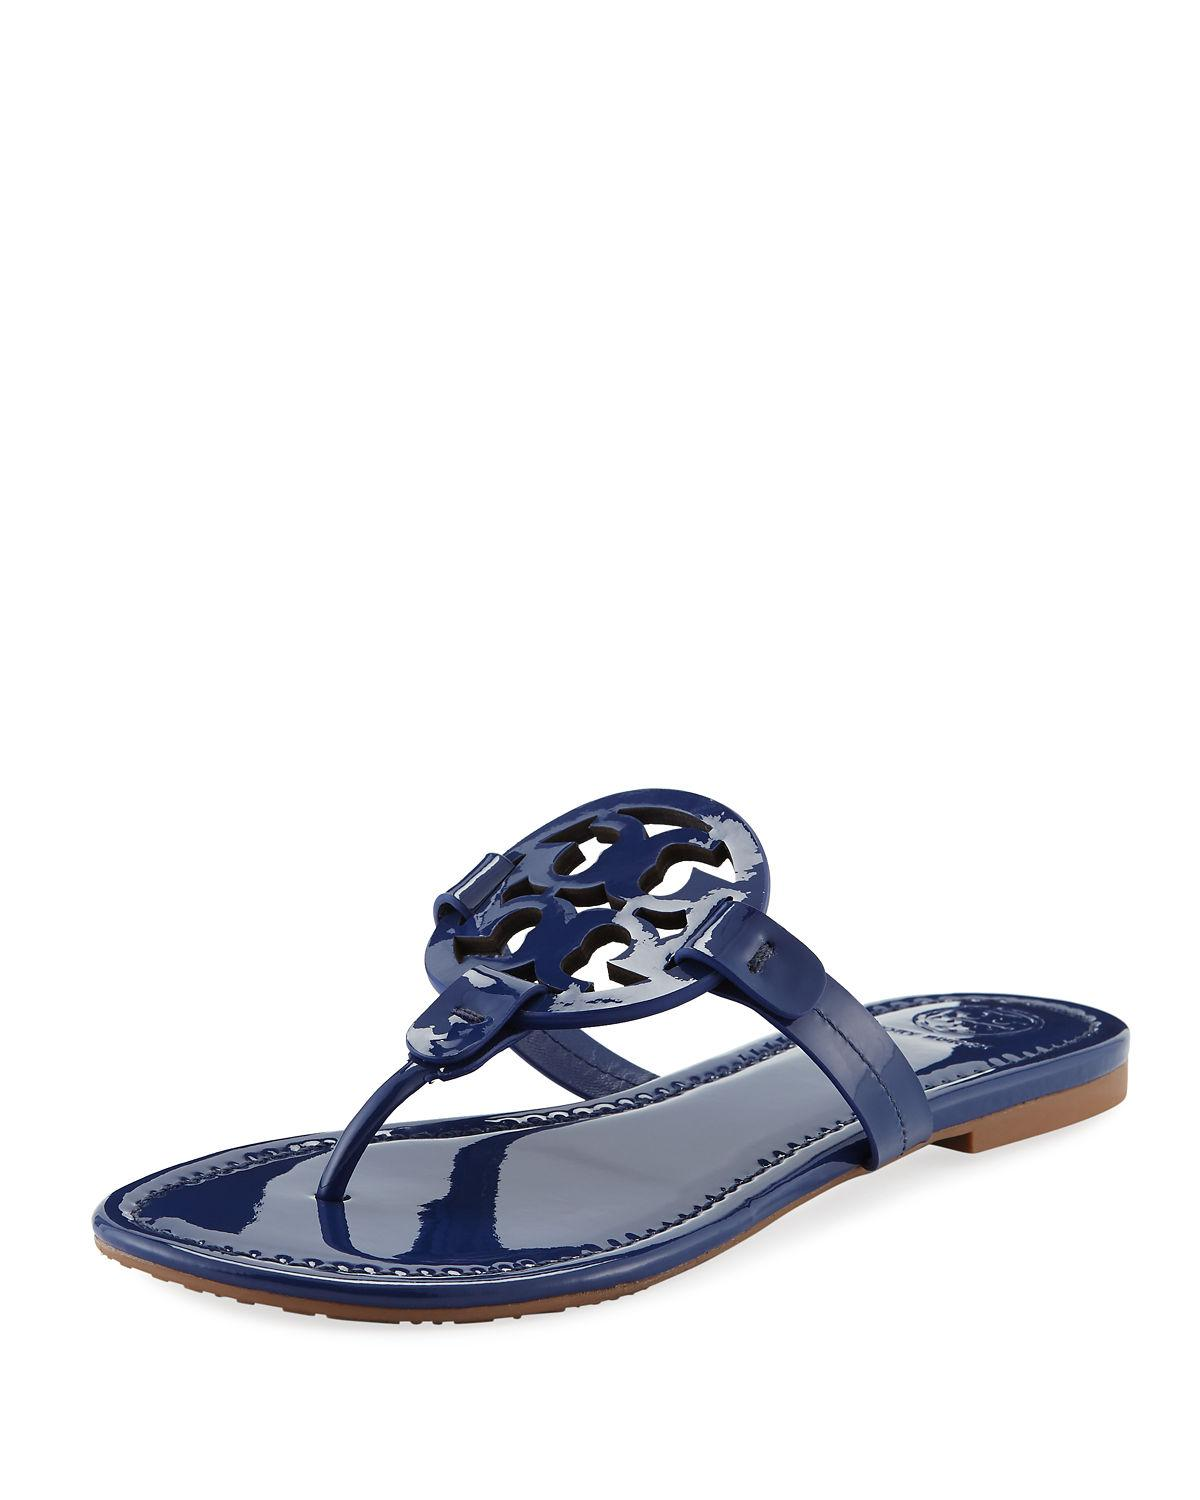 0aeb0db888d Tory Burch Miller Medallion Patent Leather Flat Thong Sandals In Bright  Indigo